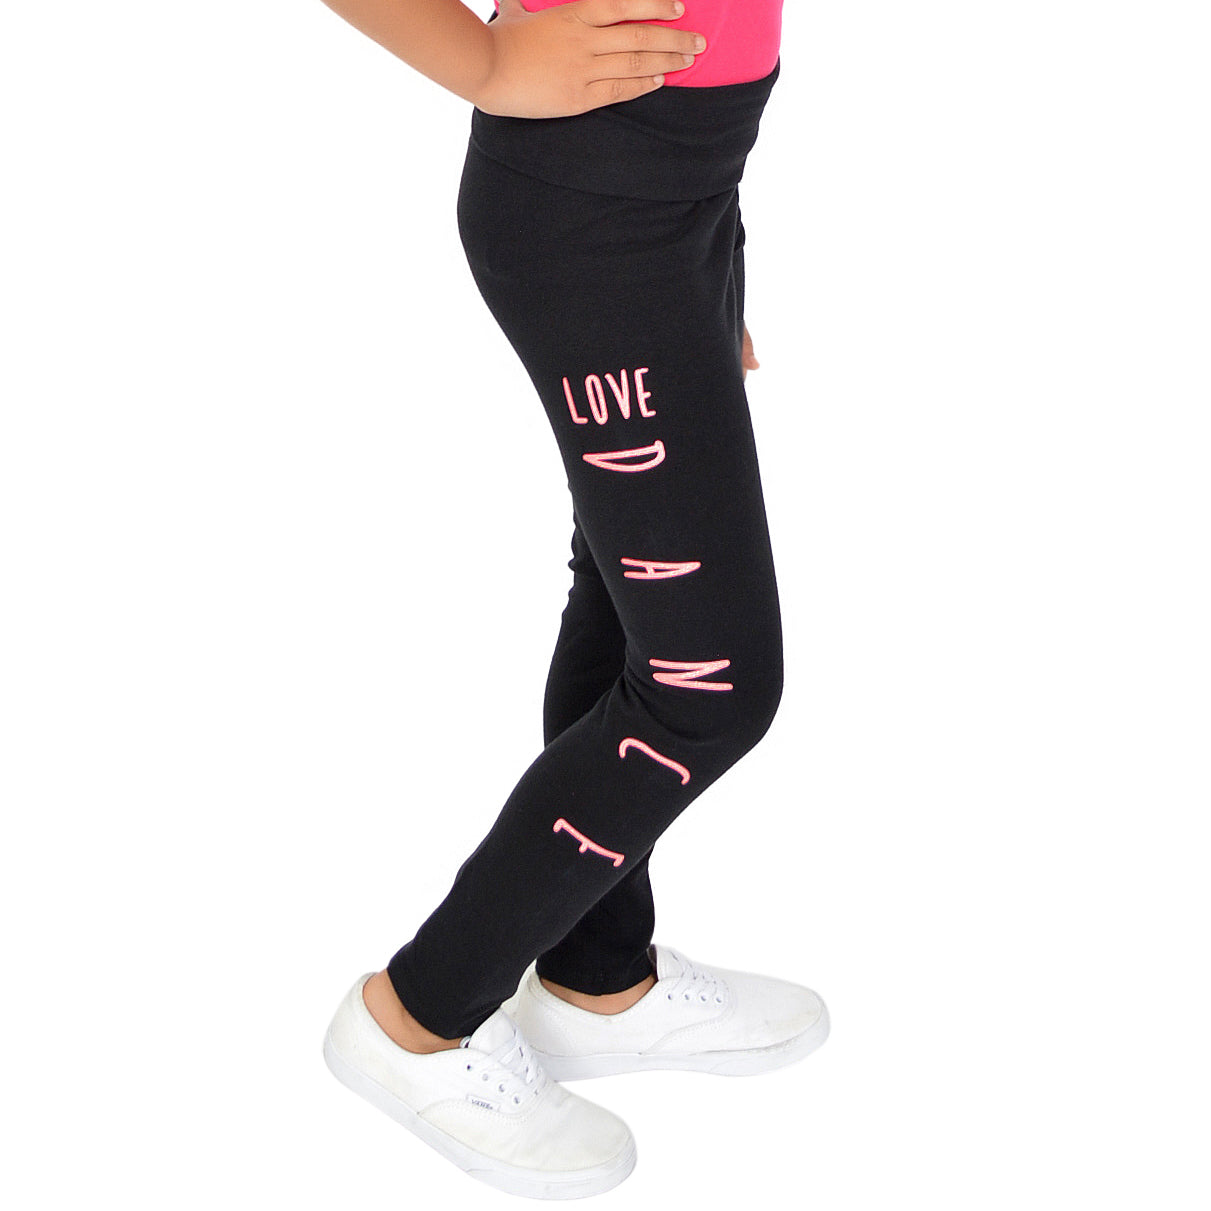 Teamwear Girl's Women's and Plus Size Glitter LOVE DANCE Foldover Leggings